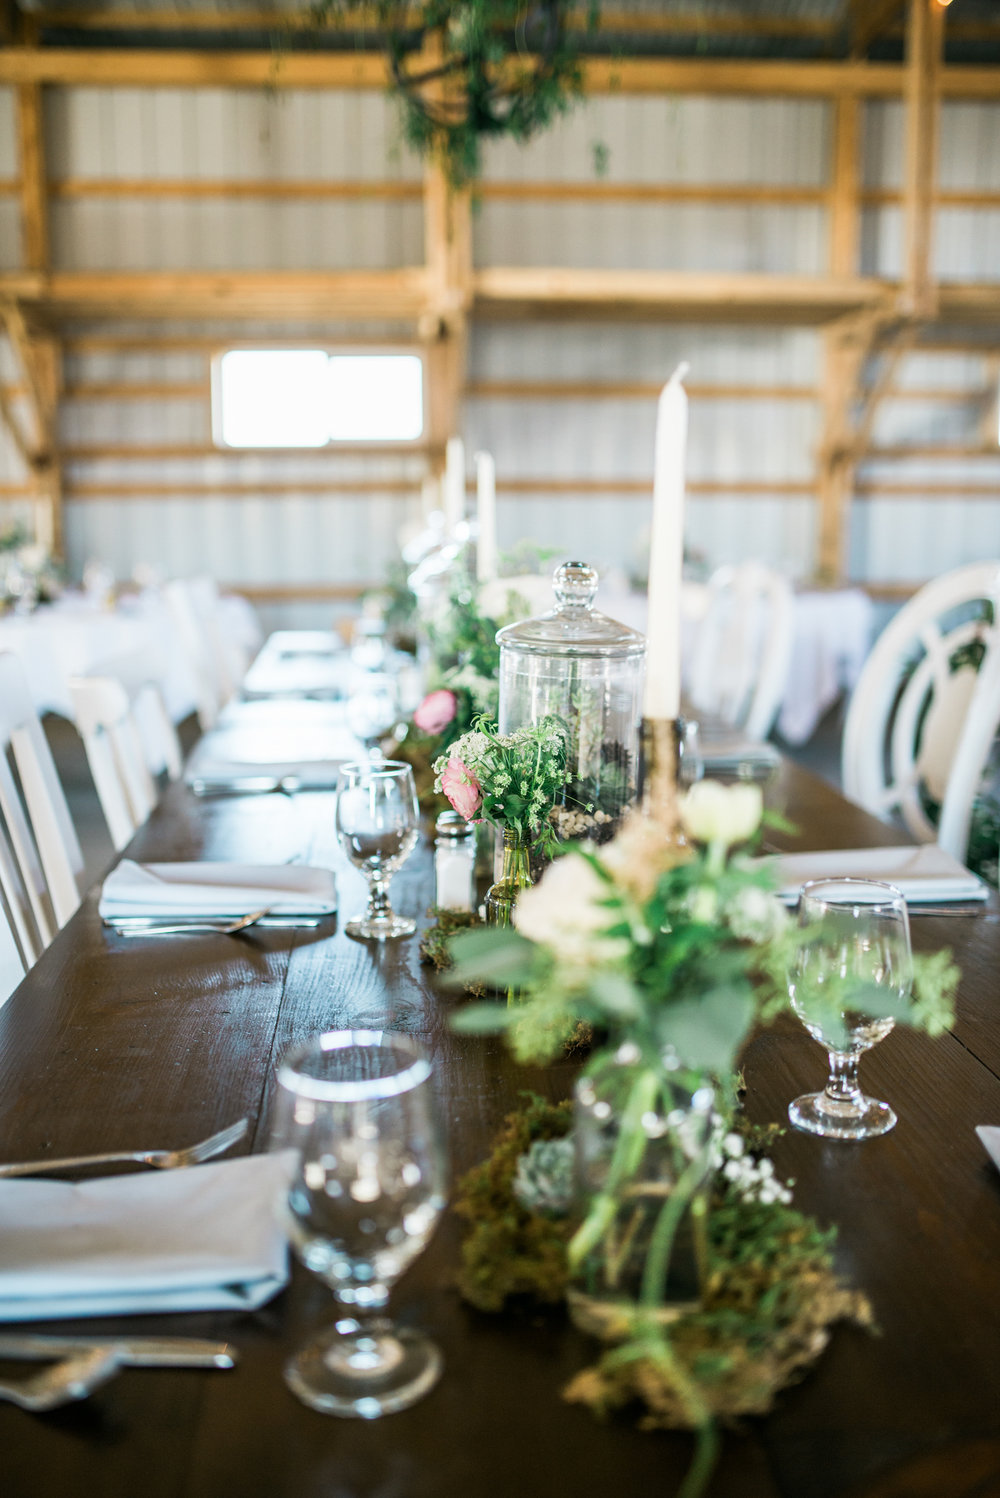 the bee's knees floral design decor minneapolis wedding flowers florist bridal florals brainerd lakes minneapols st paul twin cities st cloud duluth mankato mn florist whimsical florals wedding in the country barn wedding blush and greenery bride bouquet garden inspired loose flowing silk and willow ribbon tablescape table centerpiece moss blush flowers